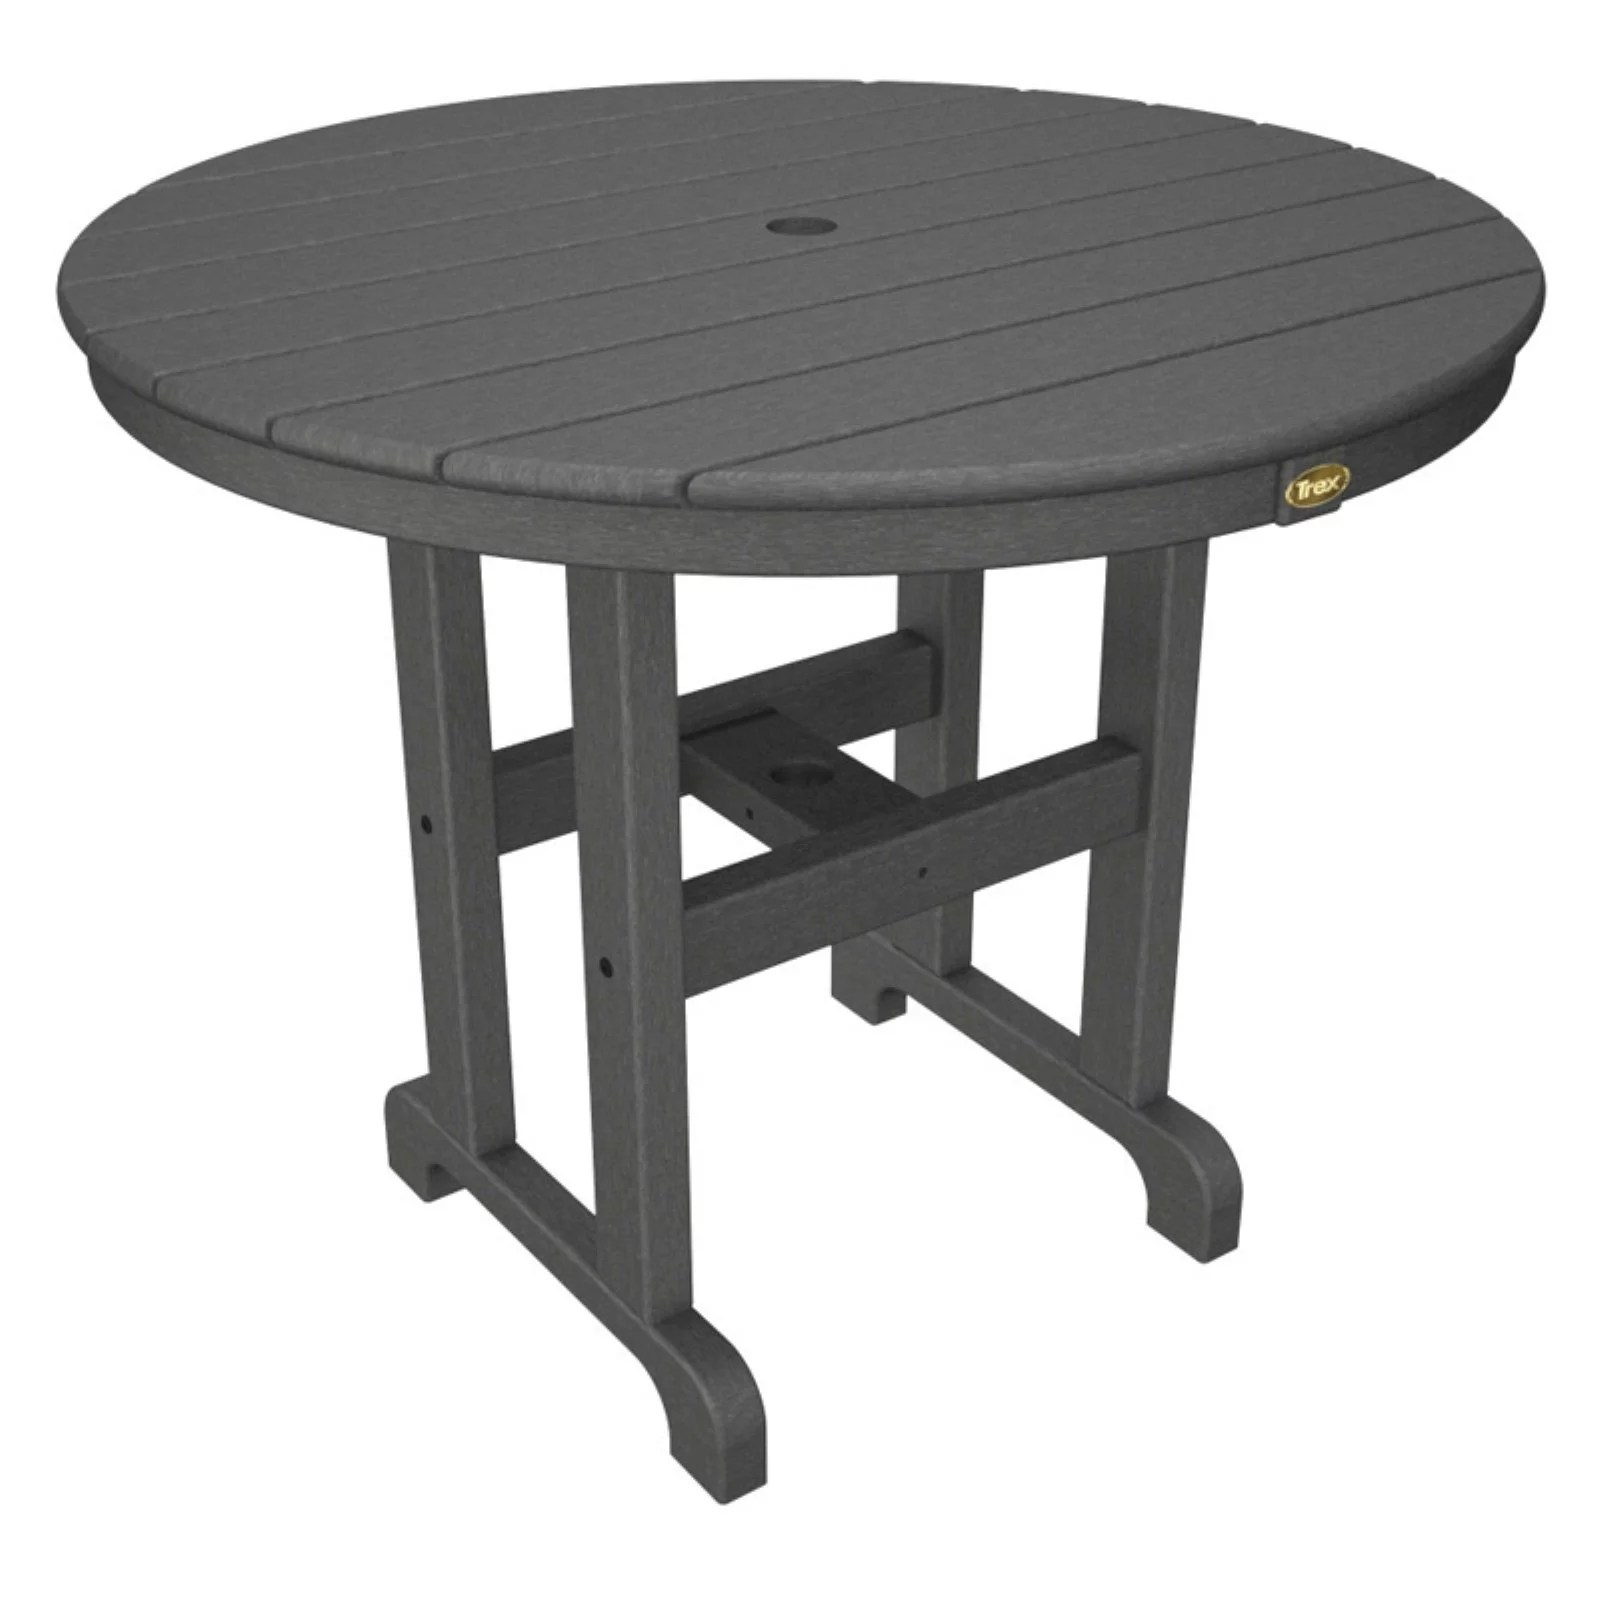 trex outdoor furniture recycled plastic monterey bay round patio dining table